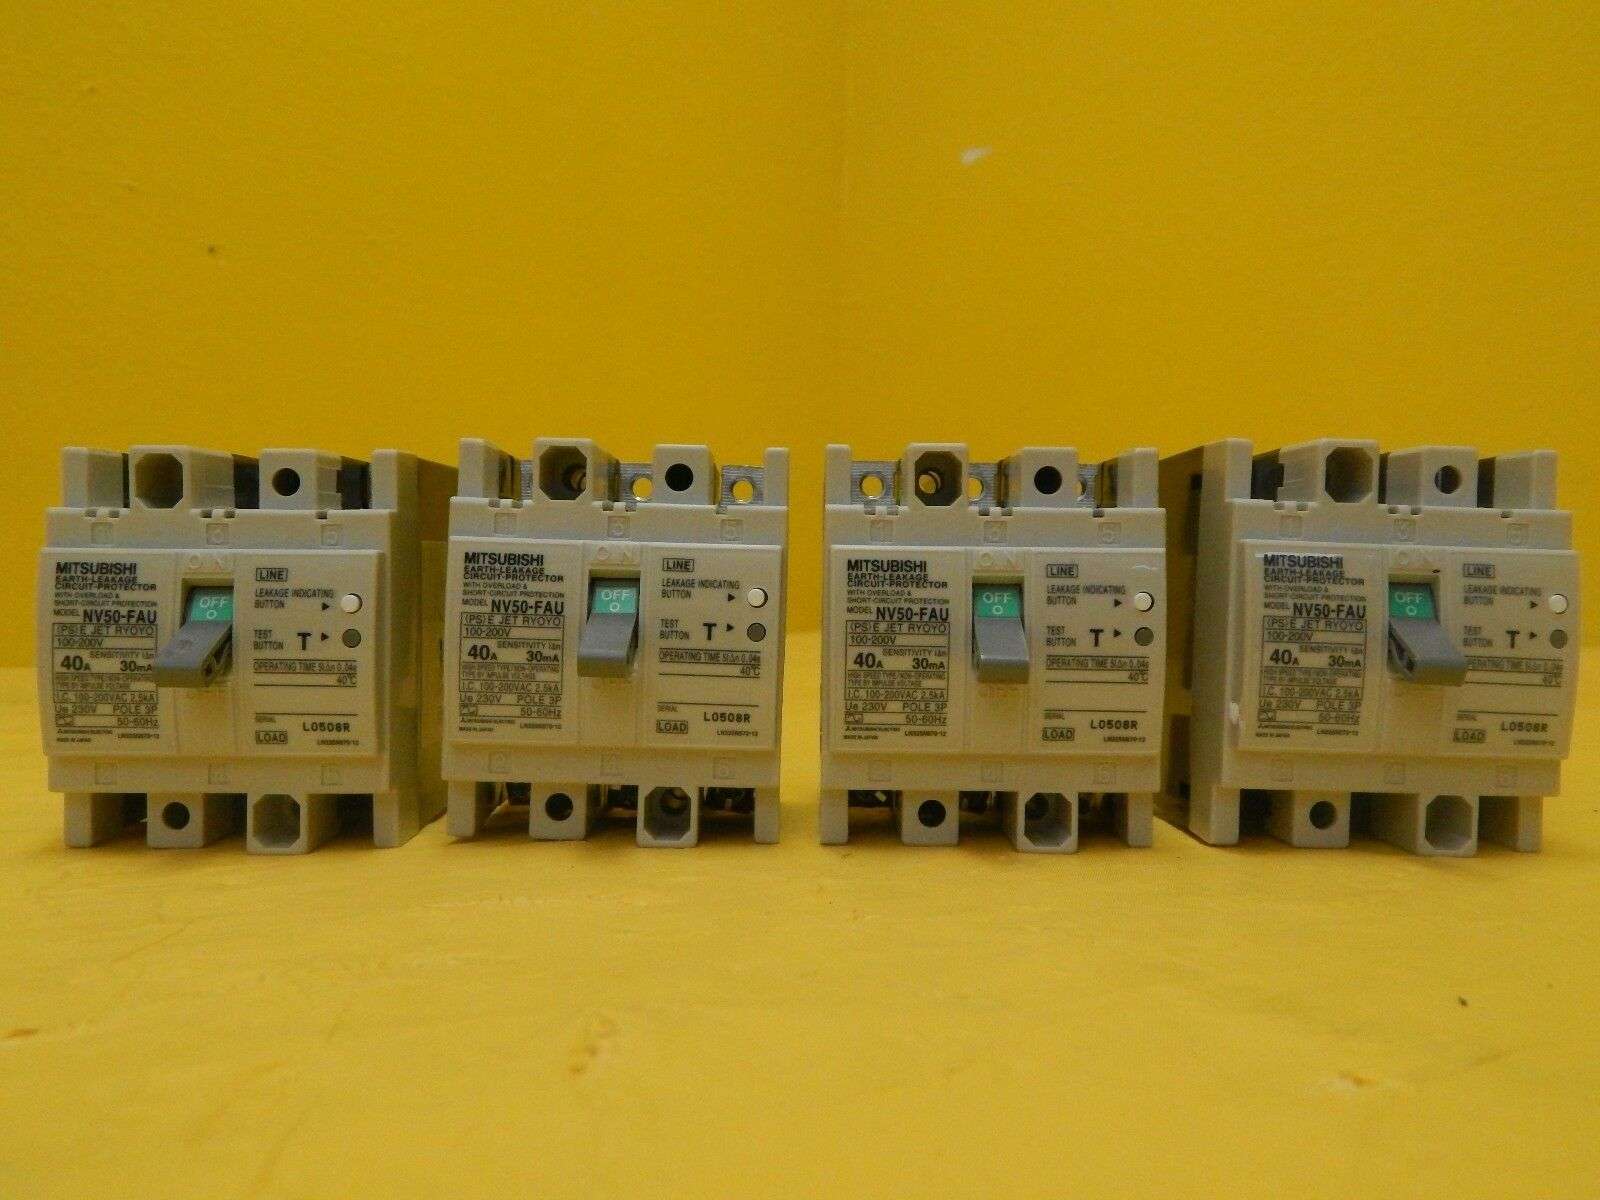 Mitsubishi NV50-FAU 40A No-Fuse Circuit Breaker Reseller Lot of 4 Used Working